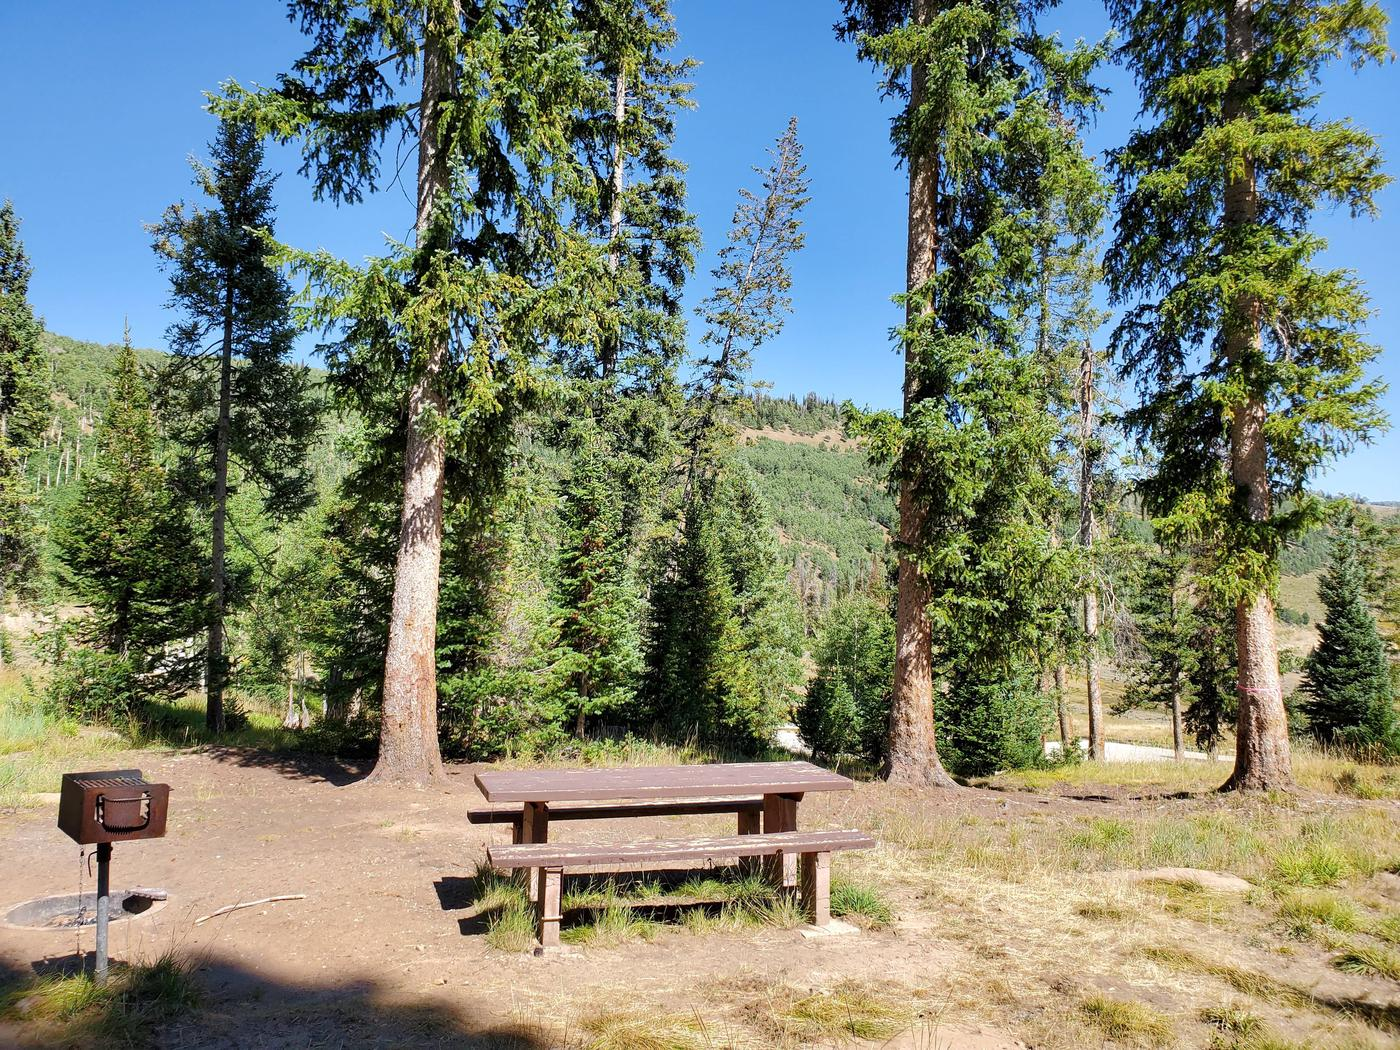 Flat Canyon Campground Site #11dFlat Canyon Campground Site #11